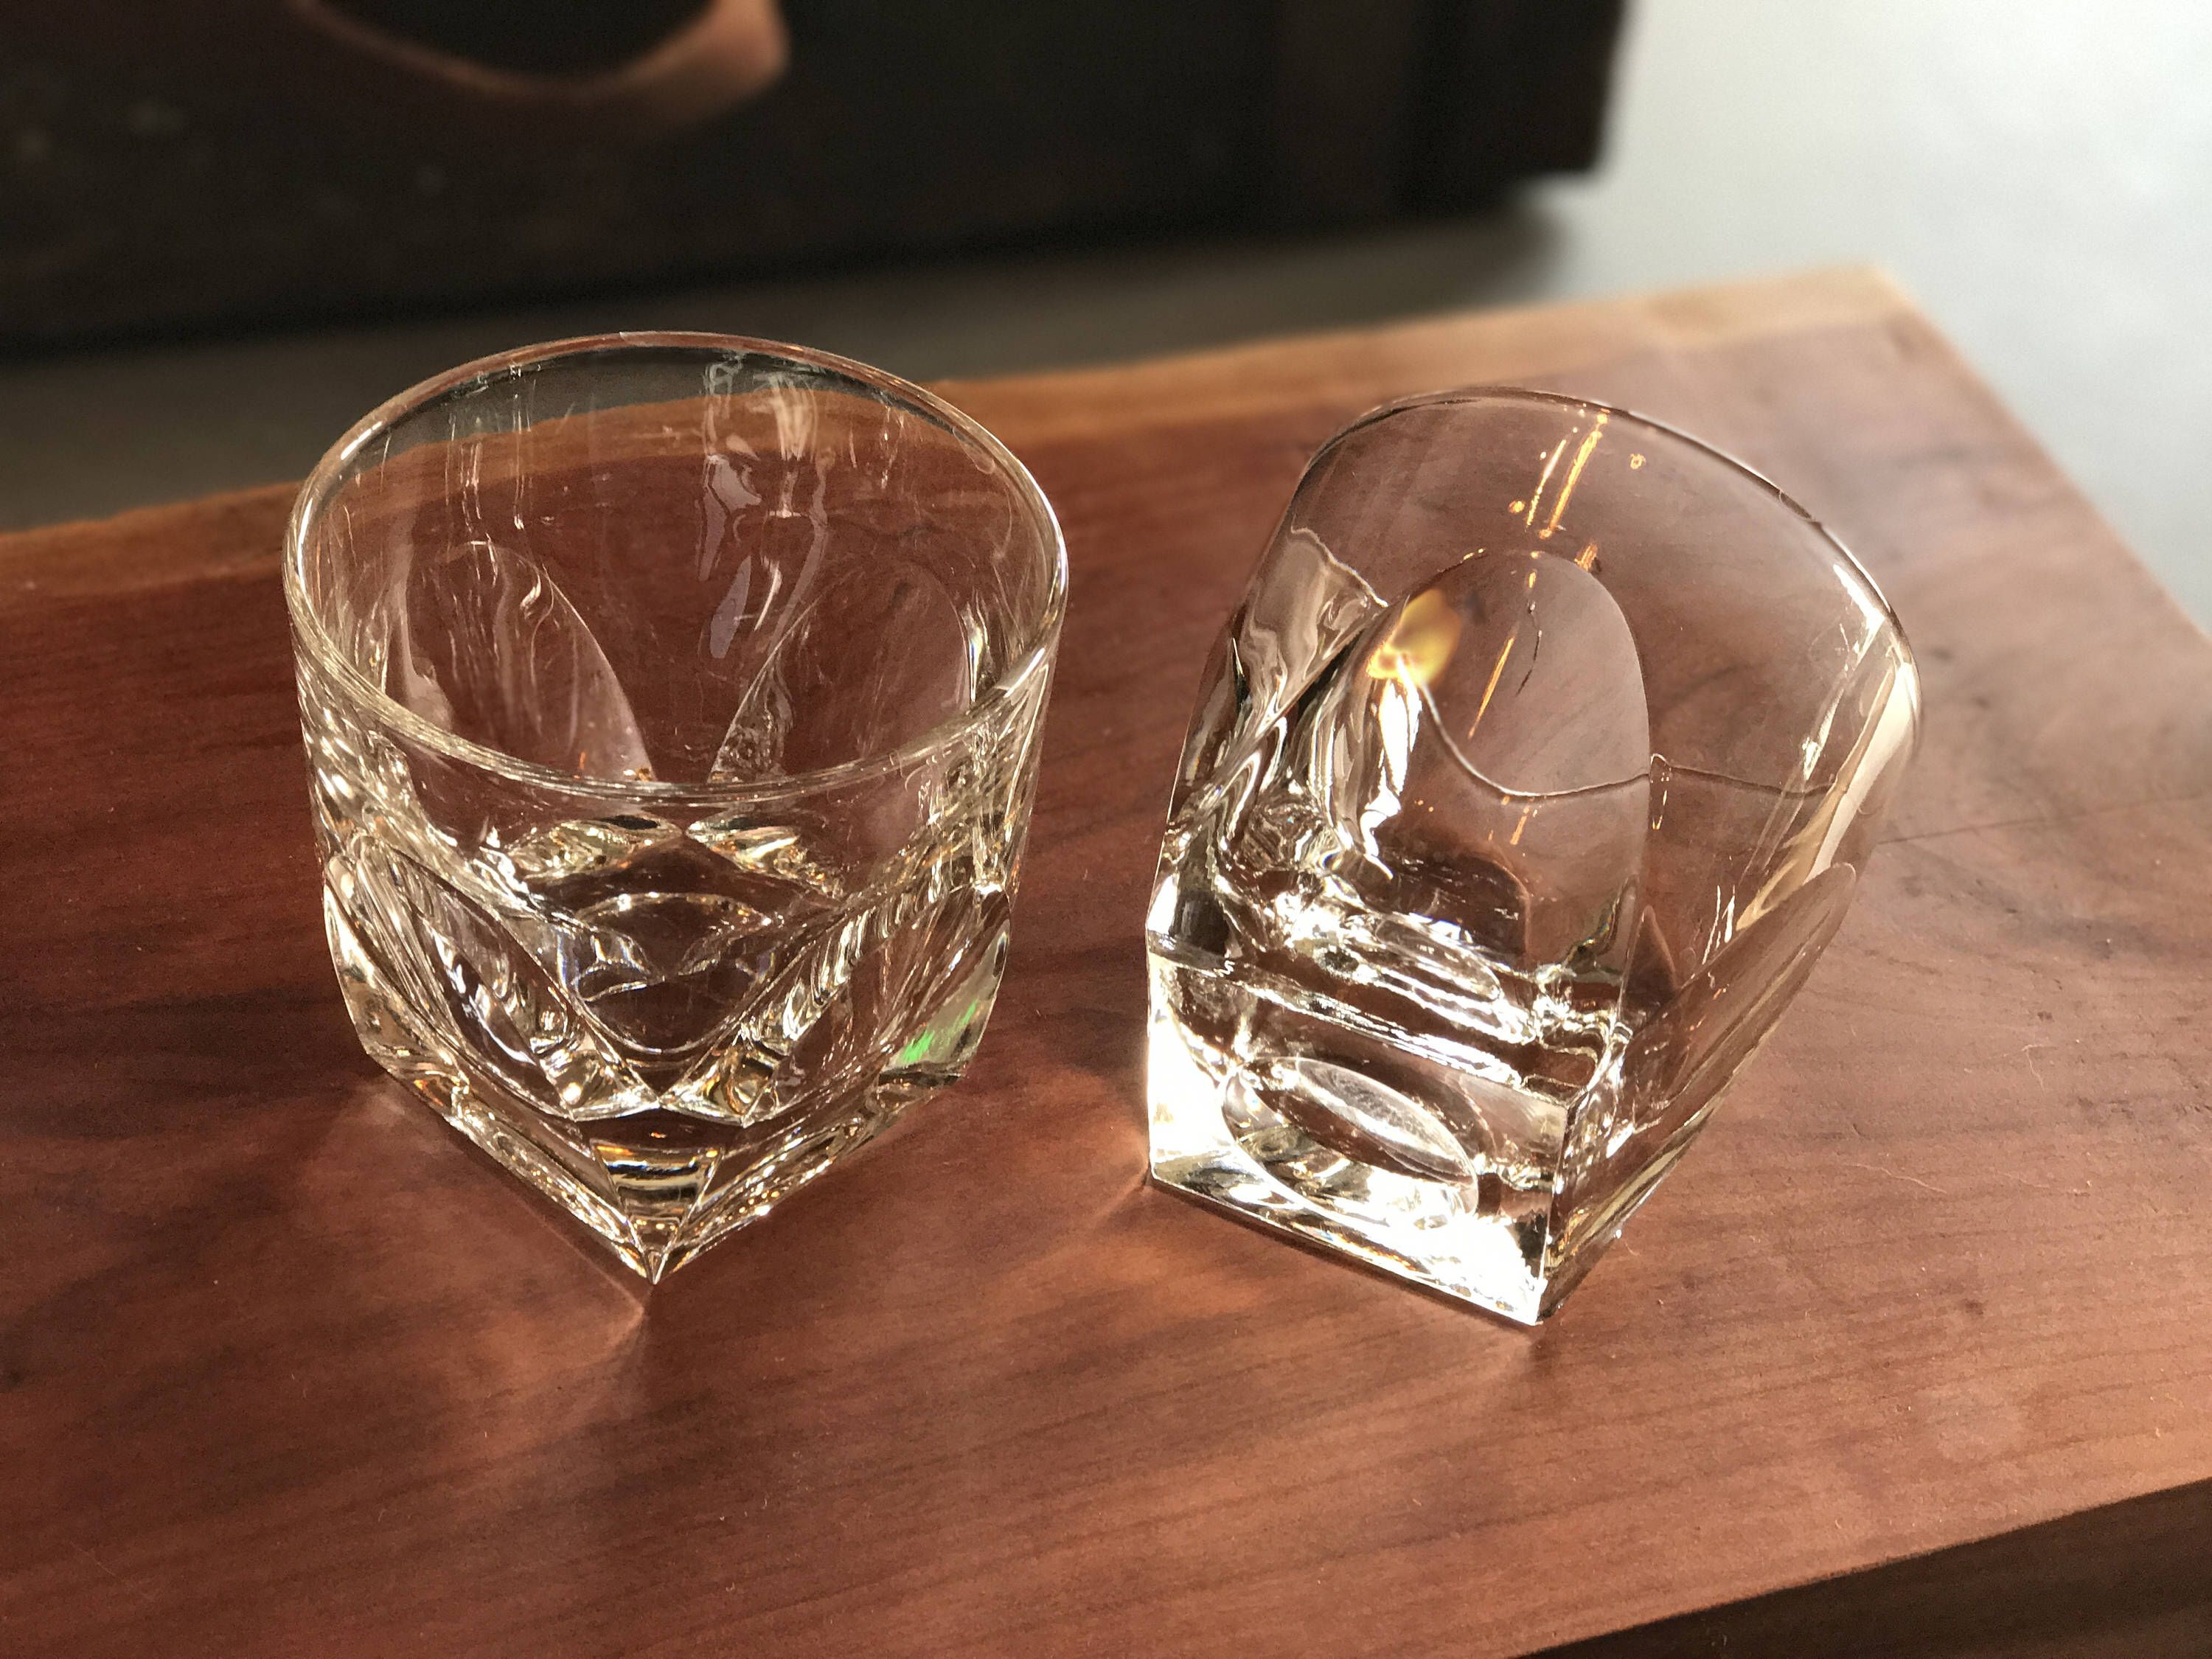 8 Retro Old Fashioned Glasses / 60u0027s   70u0027s Rocks Glass Set / Whiskey  Barware / Mixology